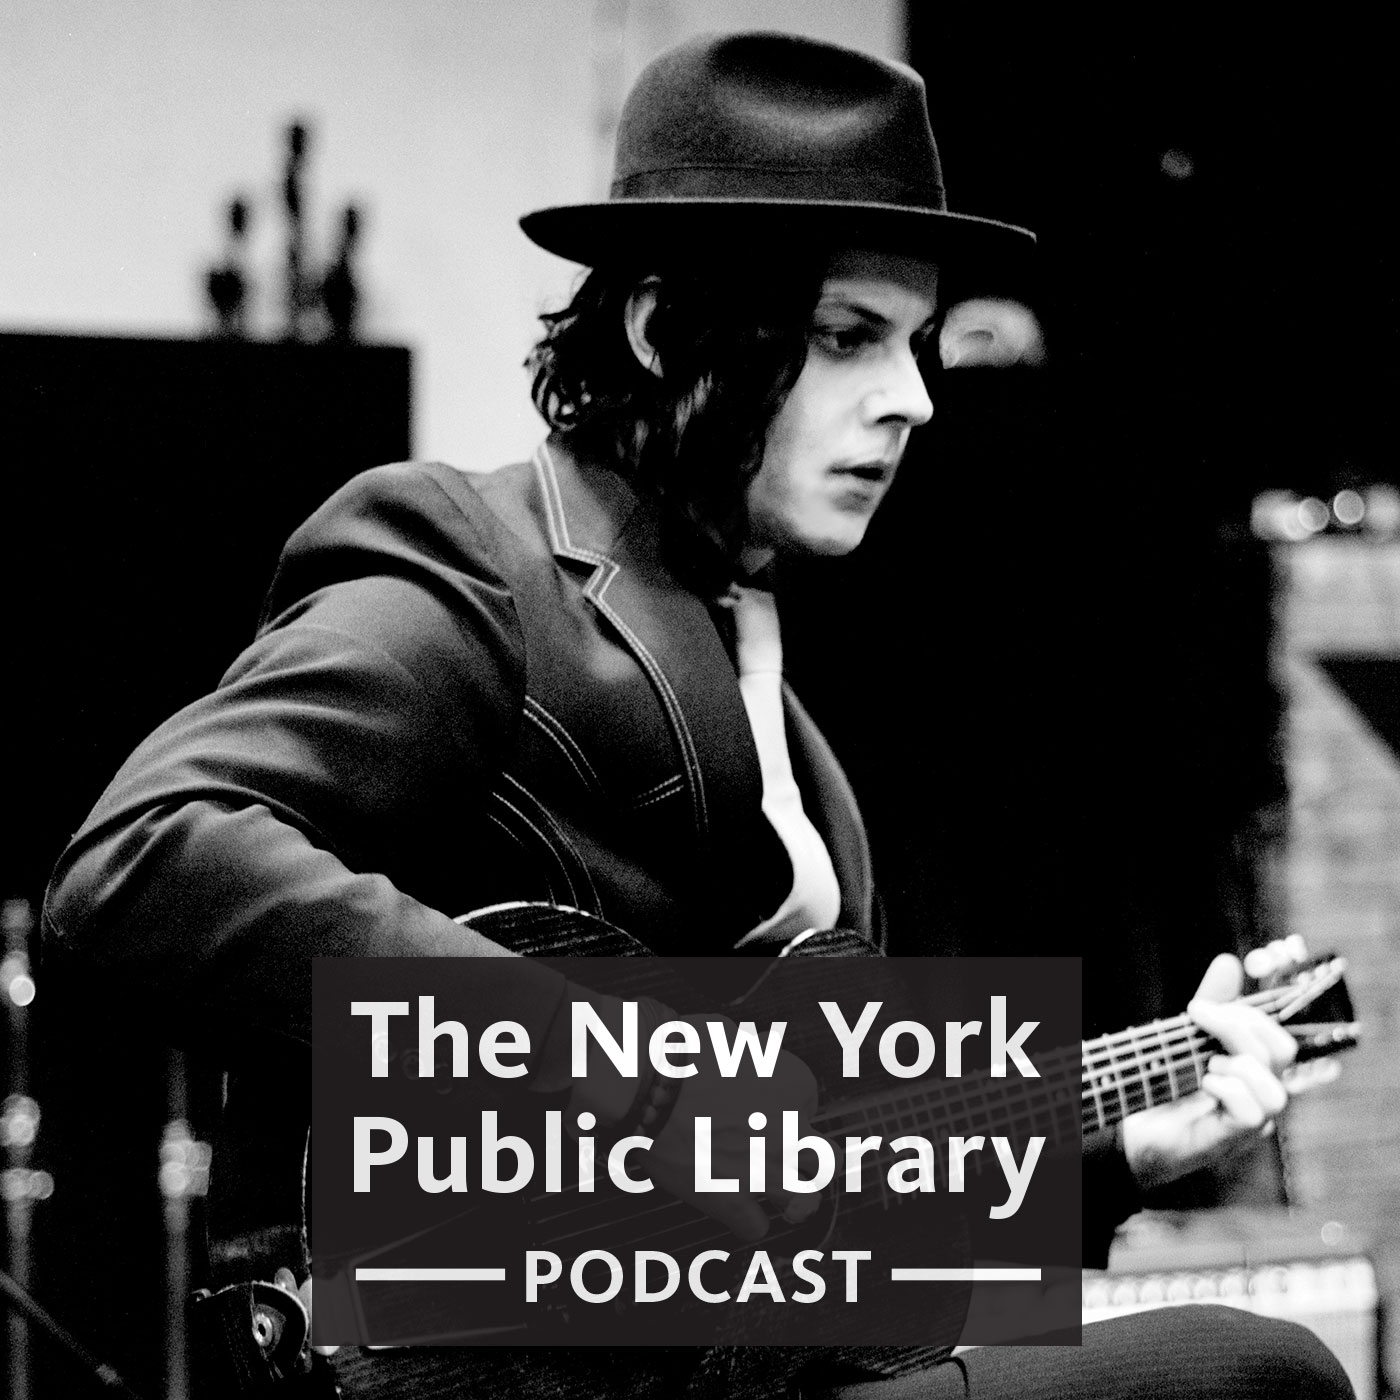 Jack White on Music & Freedom